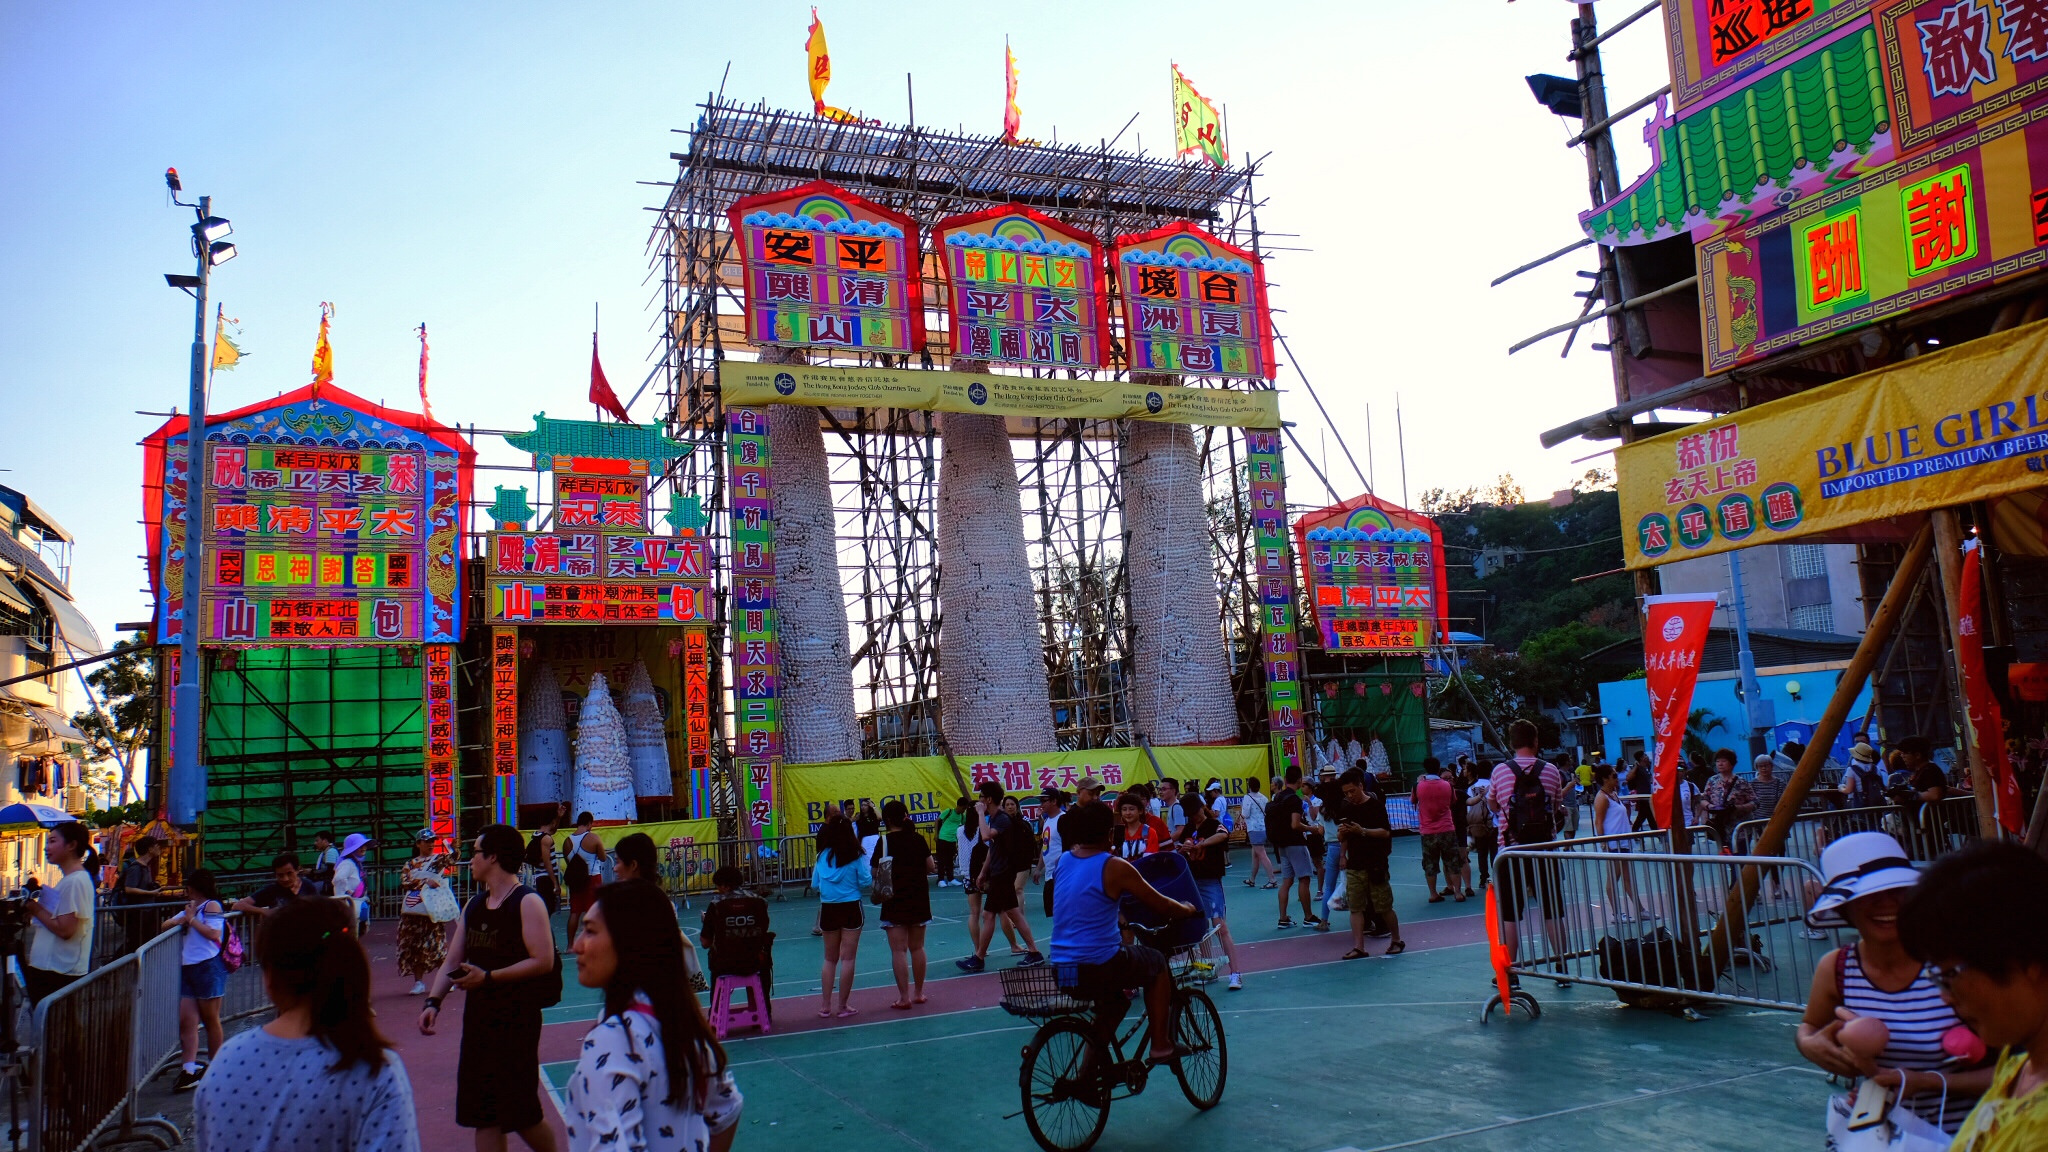 The famous Cheung Chau bun festival celebrated every on Buddha's Birthday every May.